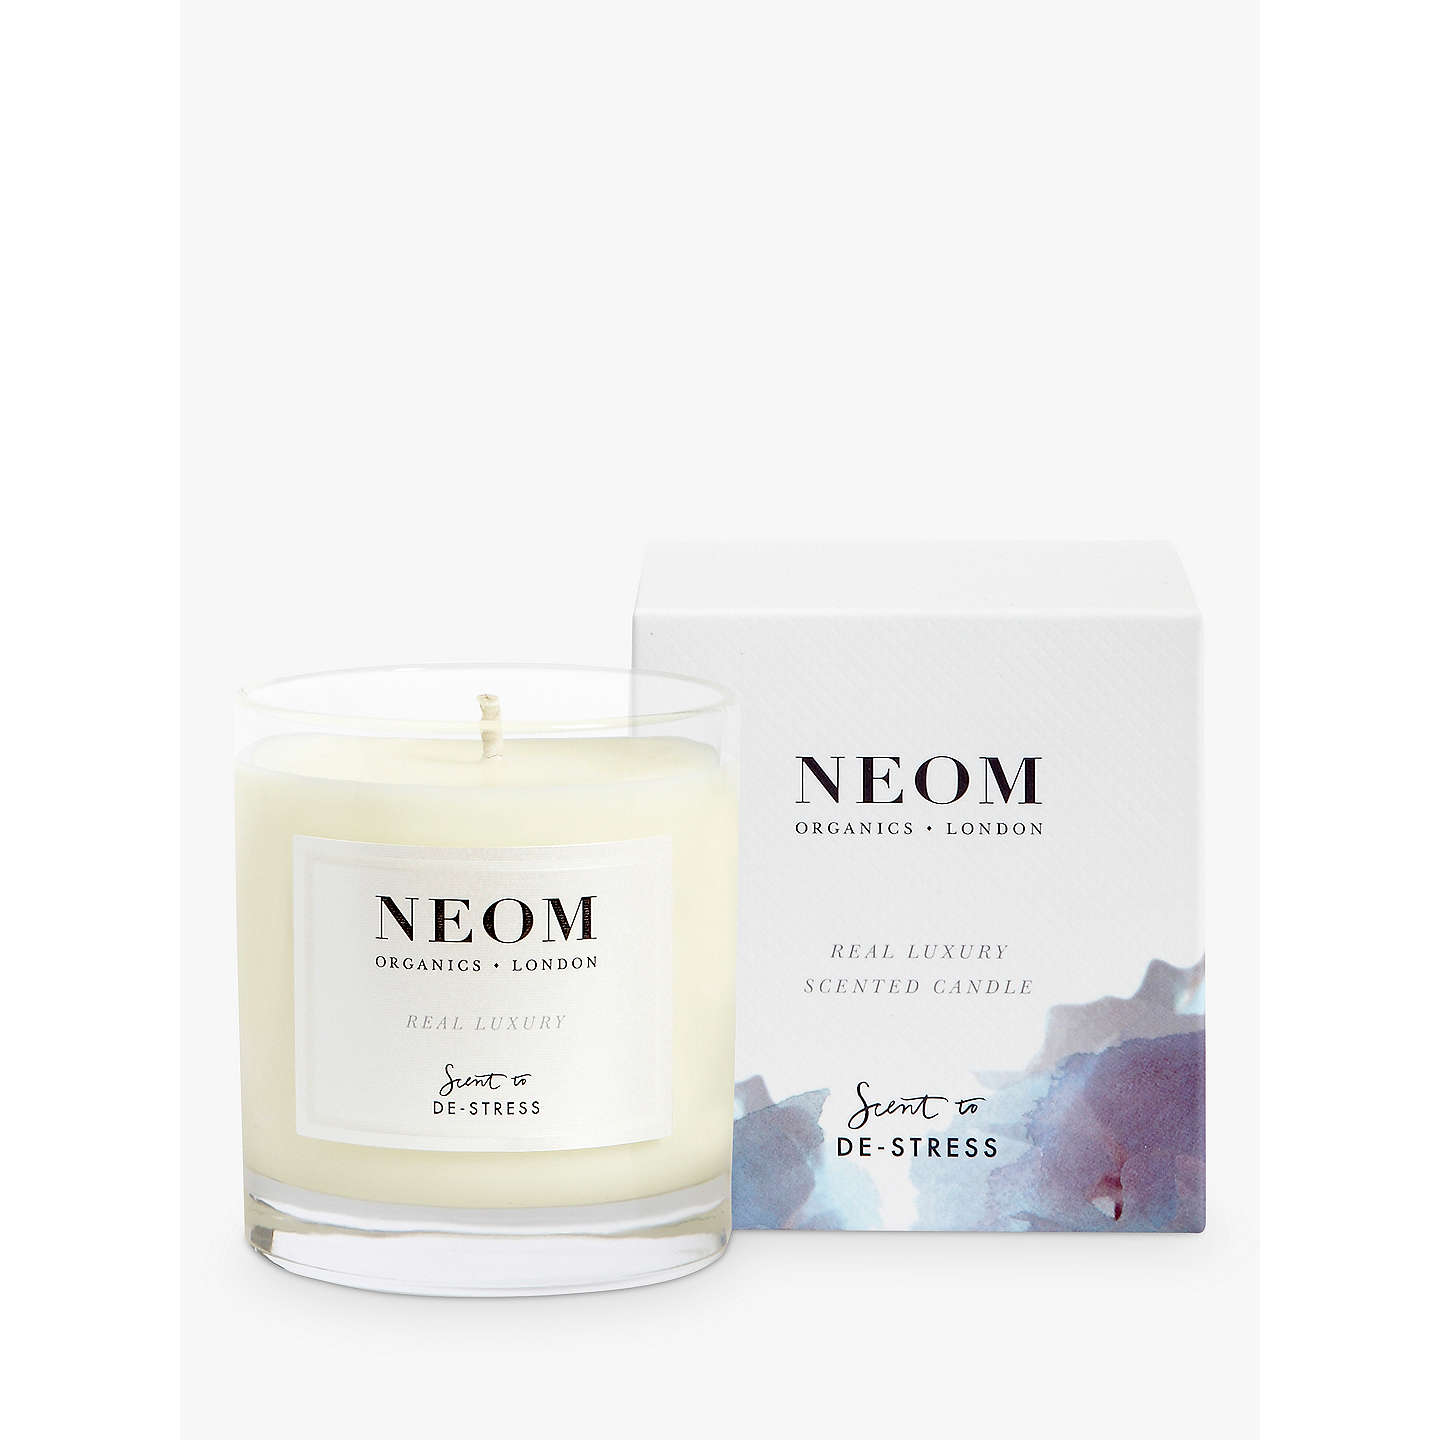 BuyNeom Organics London Real Luxury Standard Candle Online at johnlewis.com